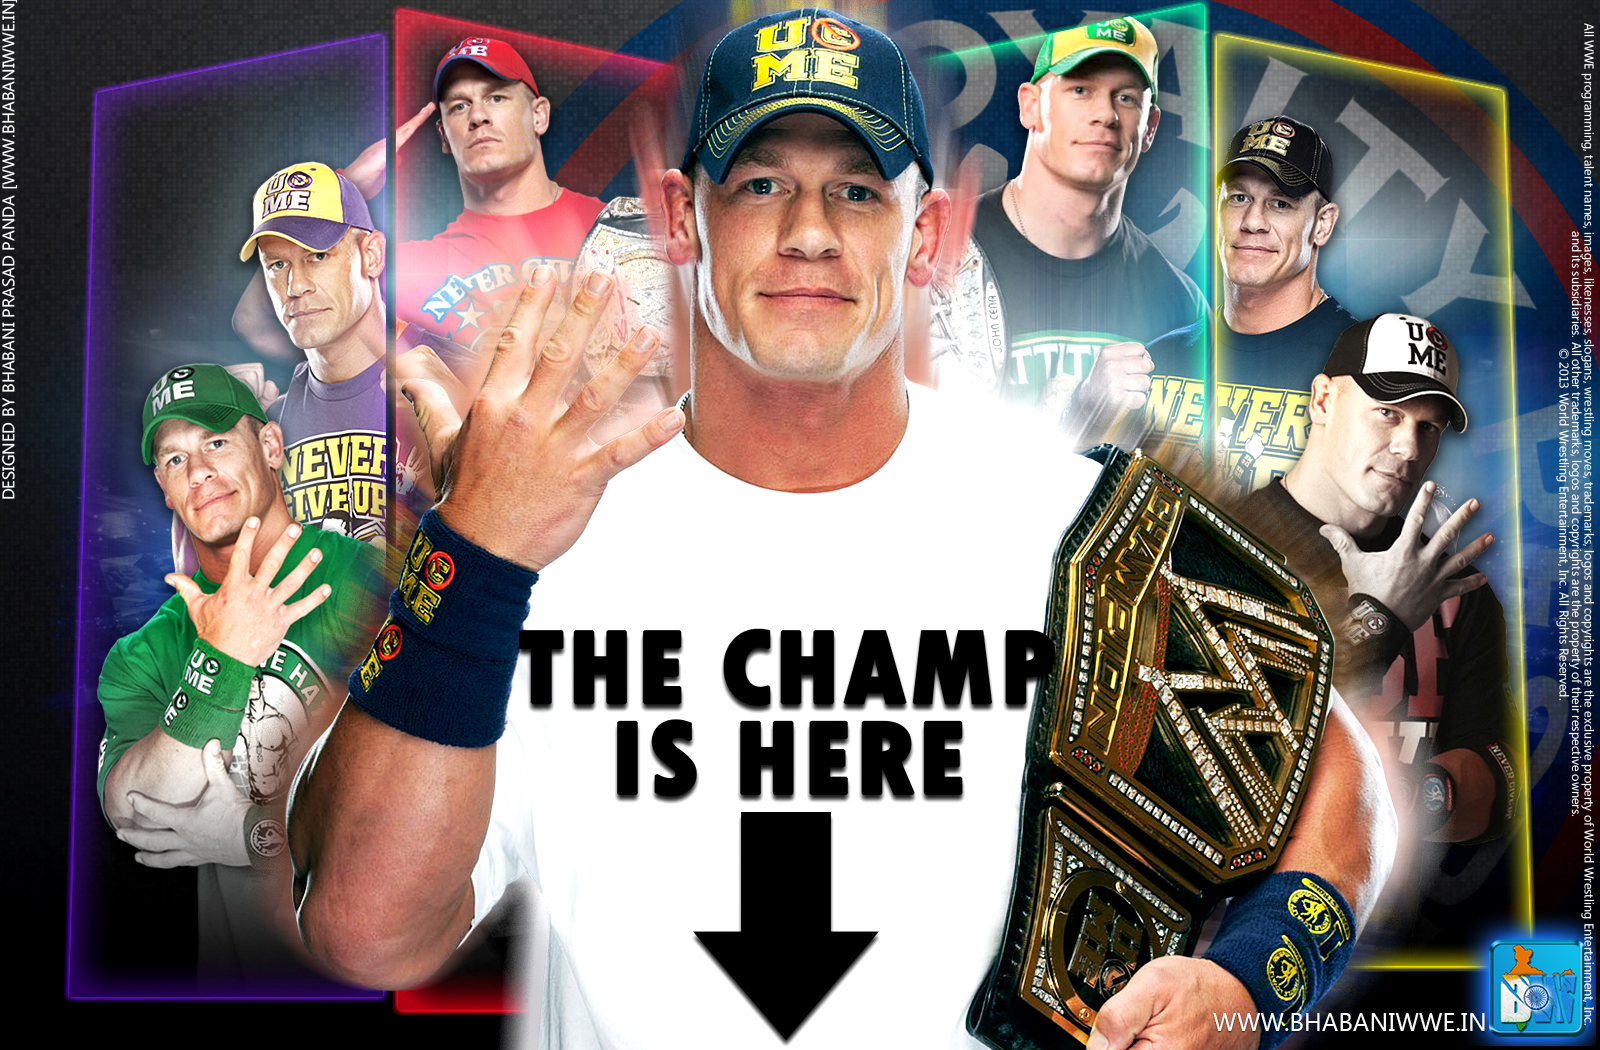 John Cena Wallpaper 2013 World Heavyweight Champion Download